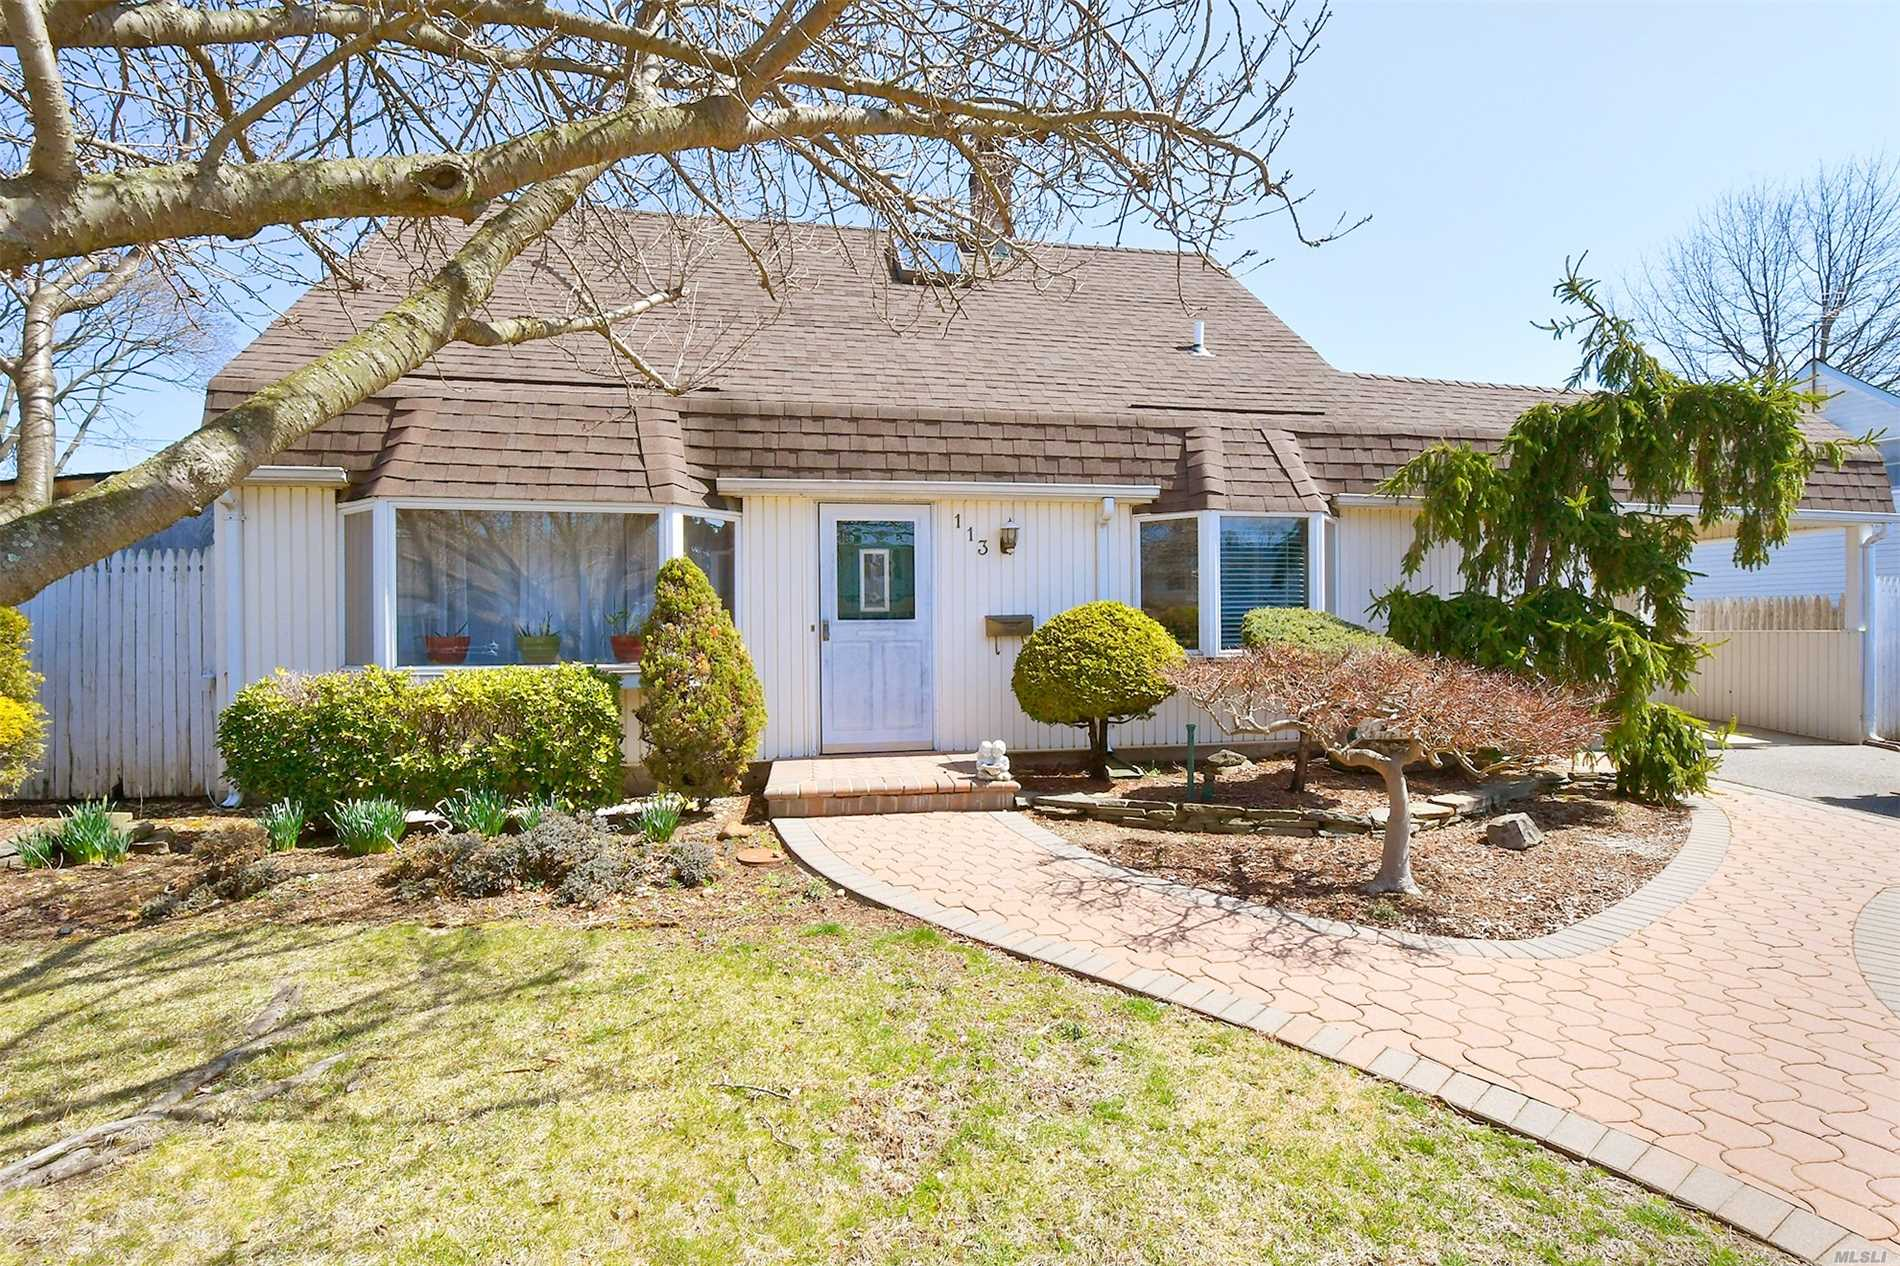 Meticulously Maintained Spacious Cape Featuring Updated Kitchen & Baths, Formal Dining Room, Master on the Main Floor, CAC, IGS in front, 200 Amp Electric, Fenced In Yard, Expanded Driveway, Dont Miss This Great Home w/ Lots of Entertaining Space in Award Winning Island Trees Schools!